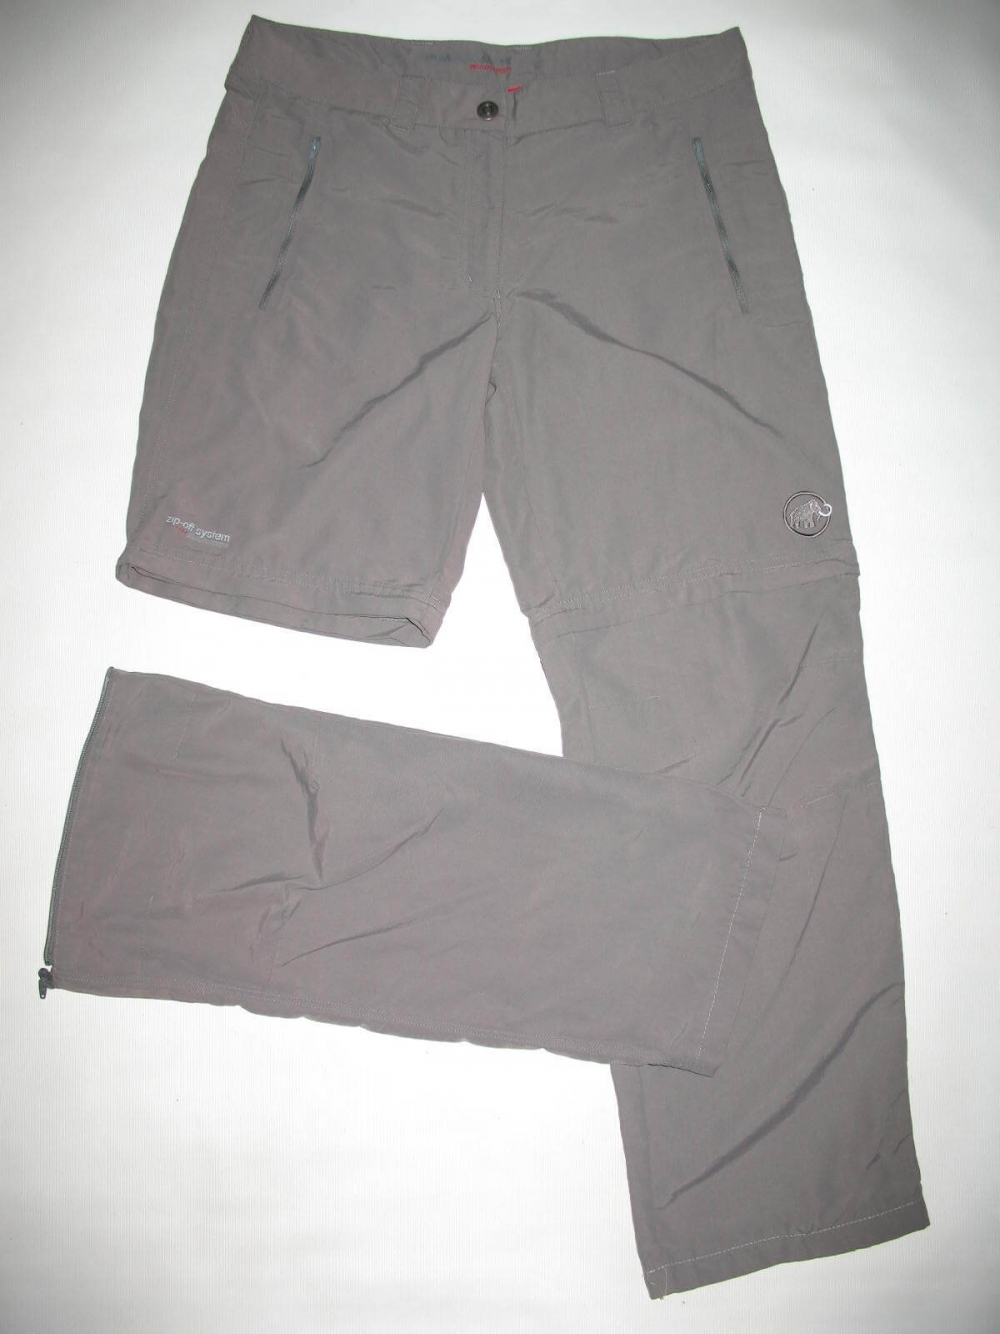 Штаны MAMMUT Zip Off pants lady (размер 40-L/M) - 2